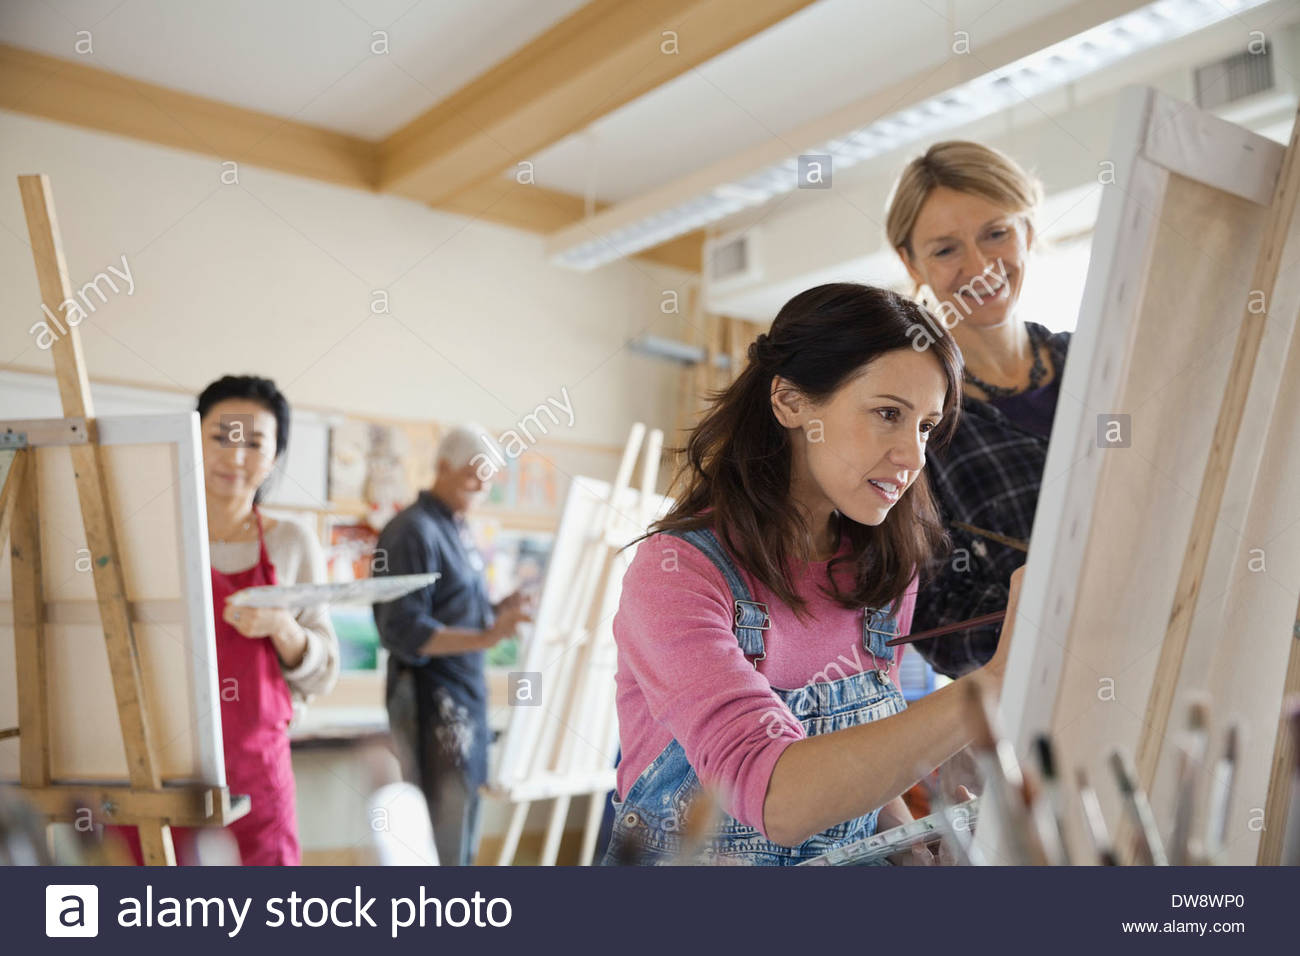 Woman taking adult painting lessons - Stock Image